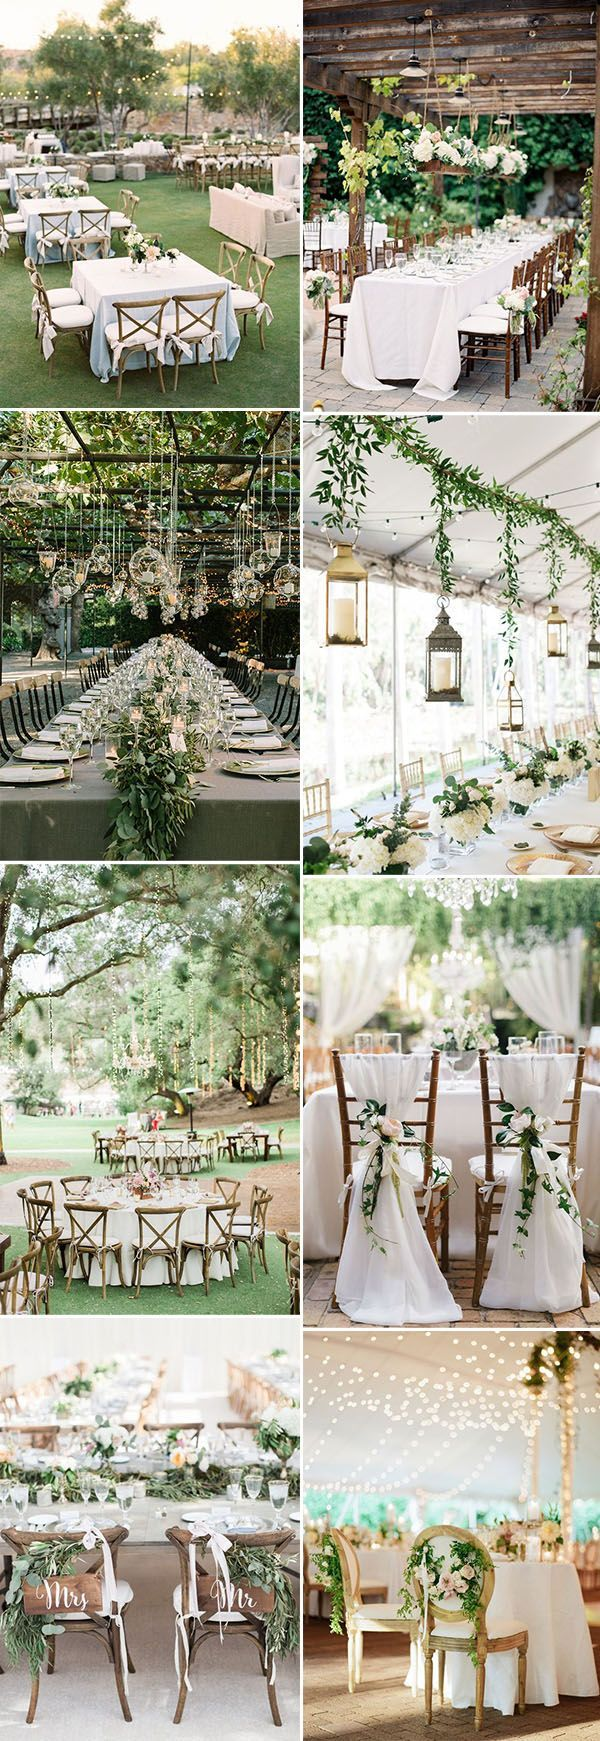 #wedwithted @TedBaker outdoor garden wedding reception ideas